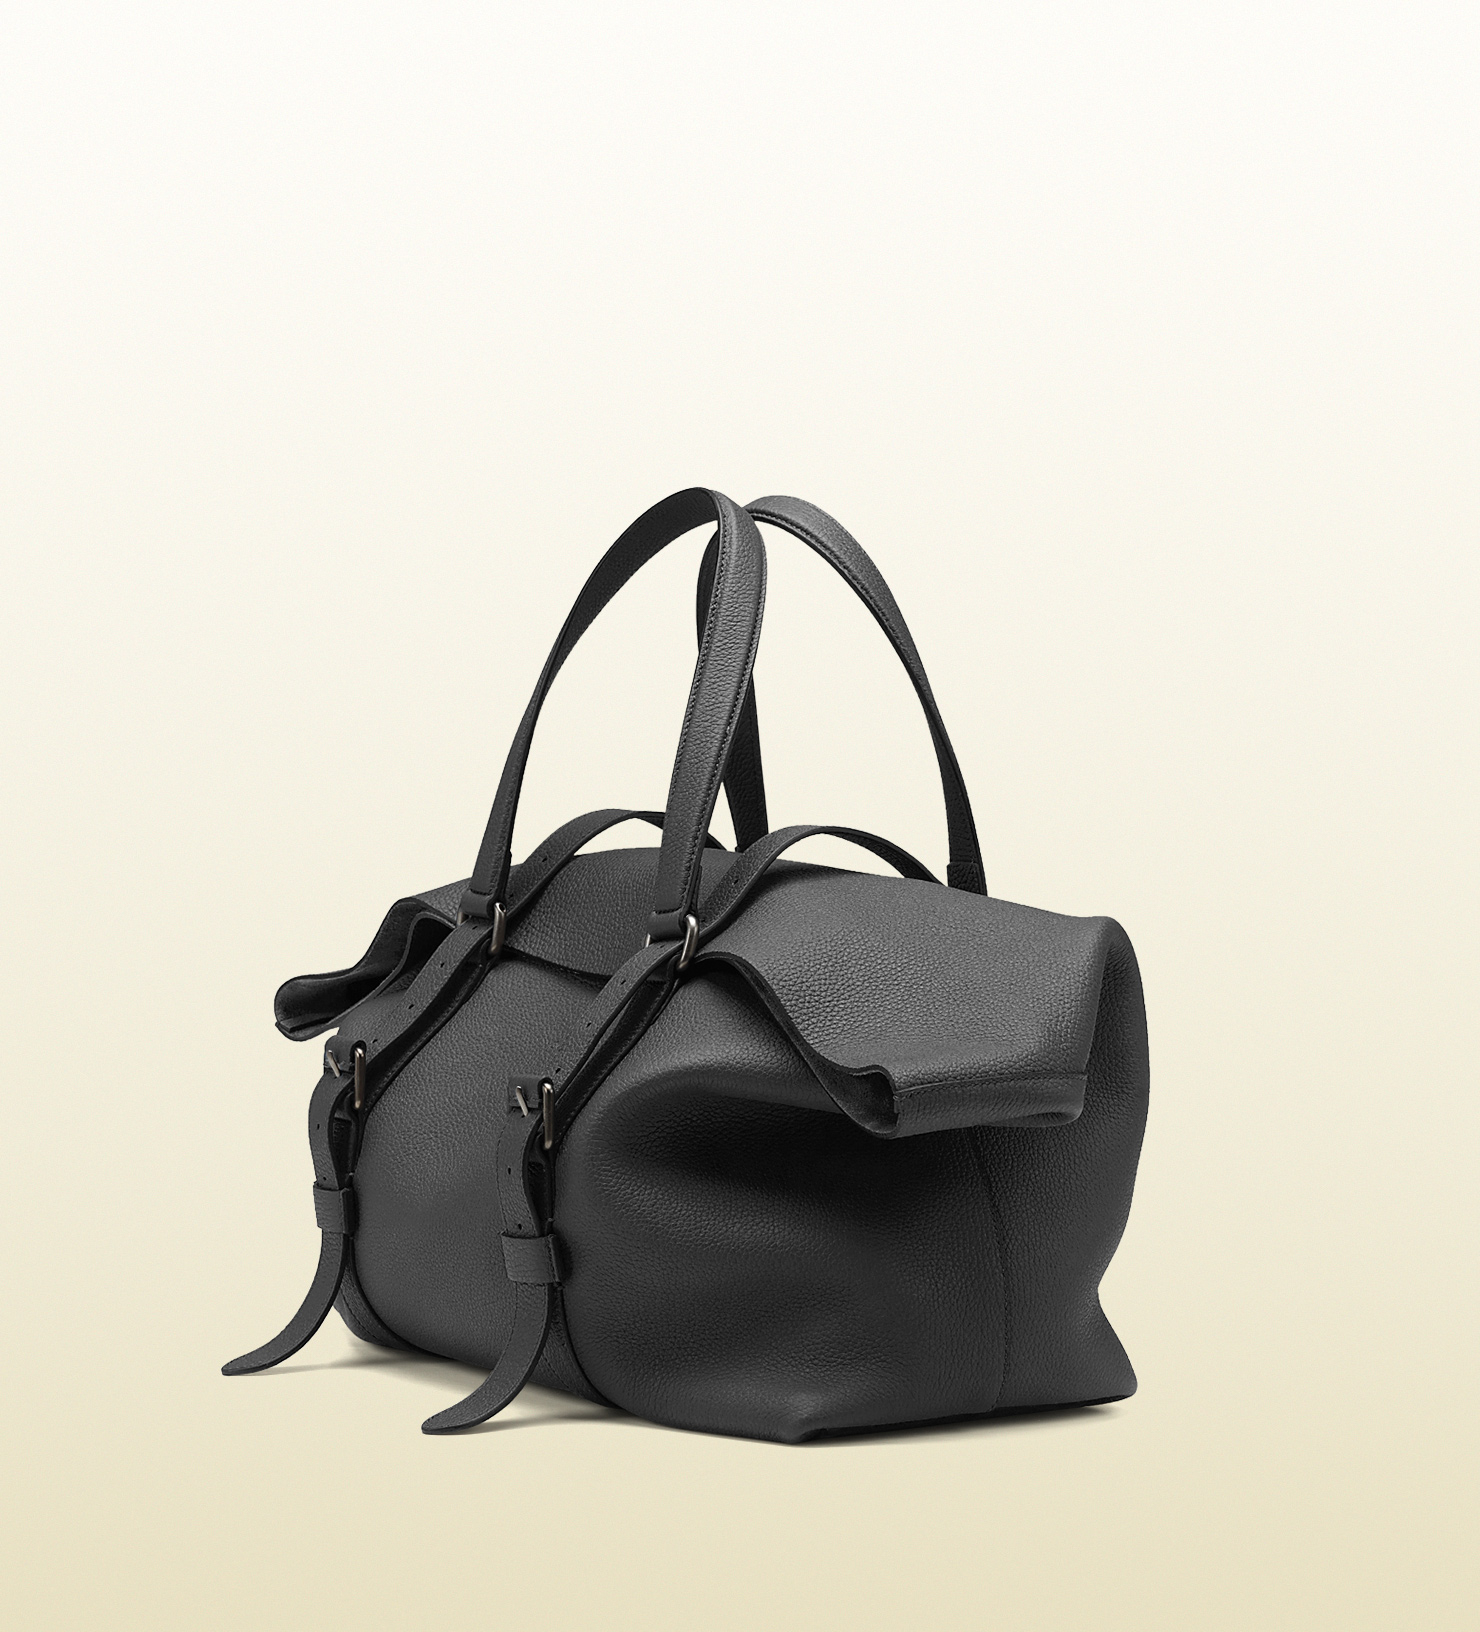 Gucci Leather Top Handle Duffle Bag In Black For Men Lyst